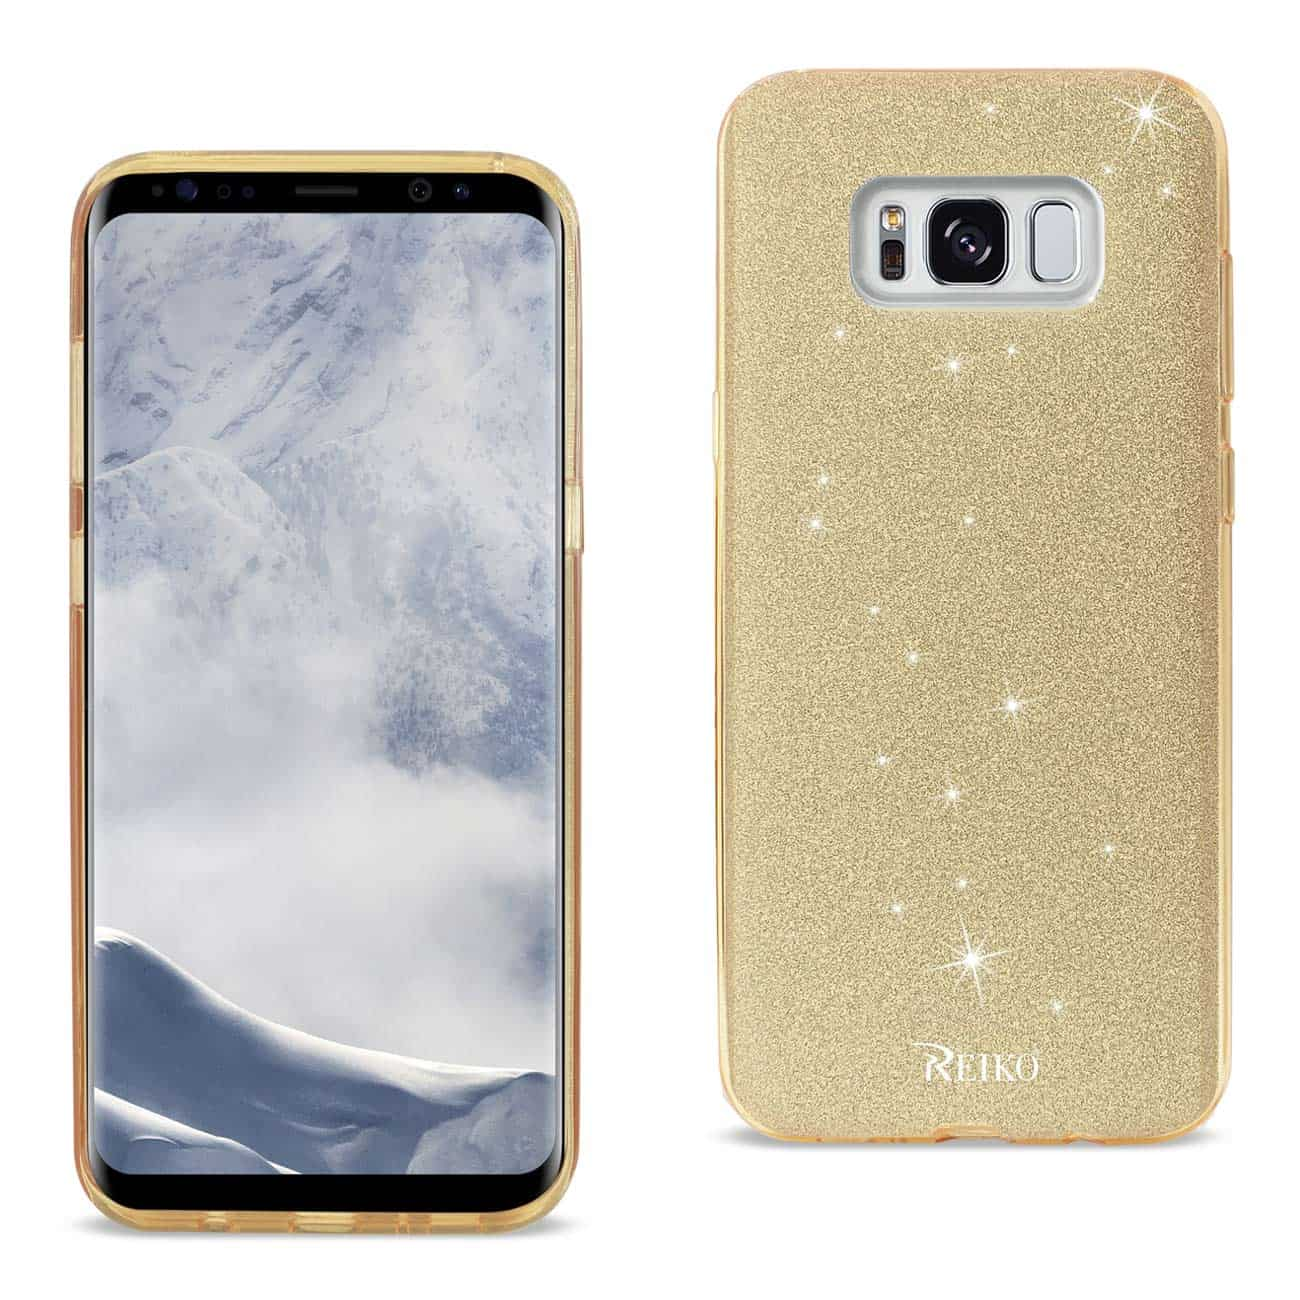 SAMSUNG GALAXY S8 EDGE/ S8 PLUS SHINE GLITTER SHIMMER LEOPARD HYBRID CASE IN GOLD